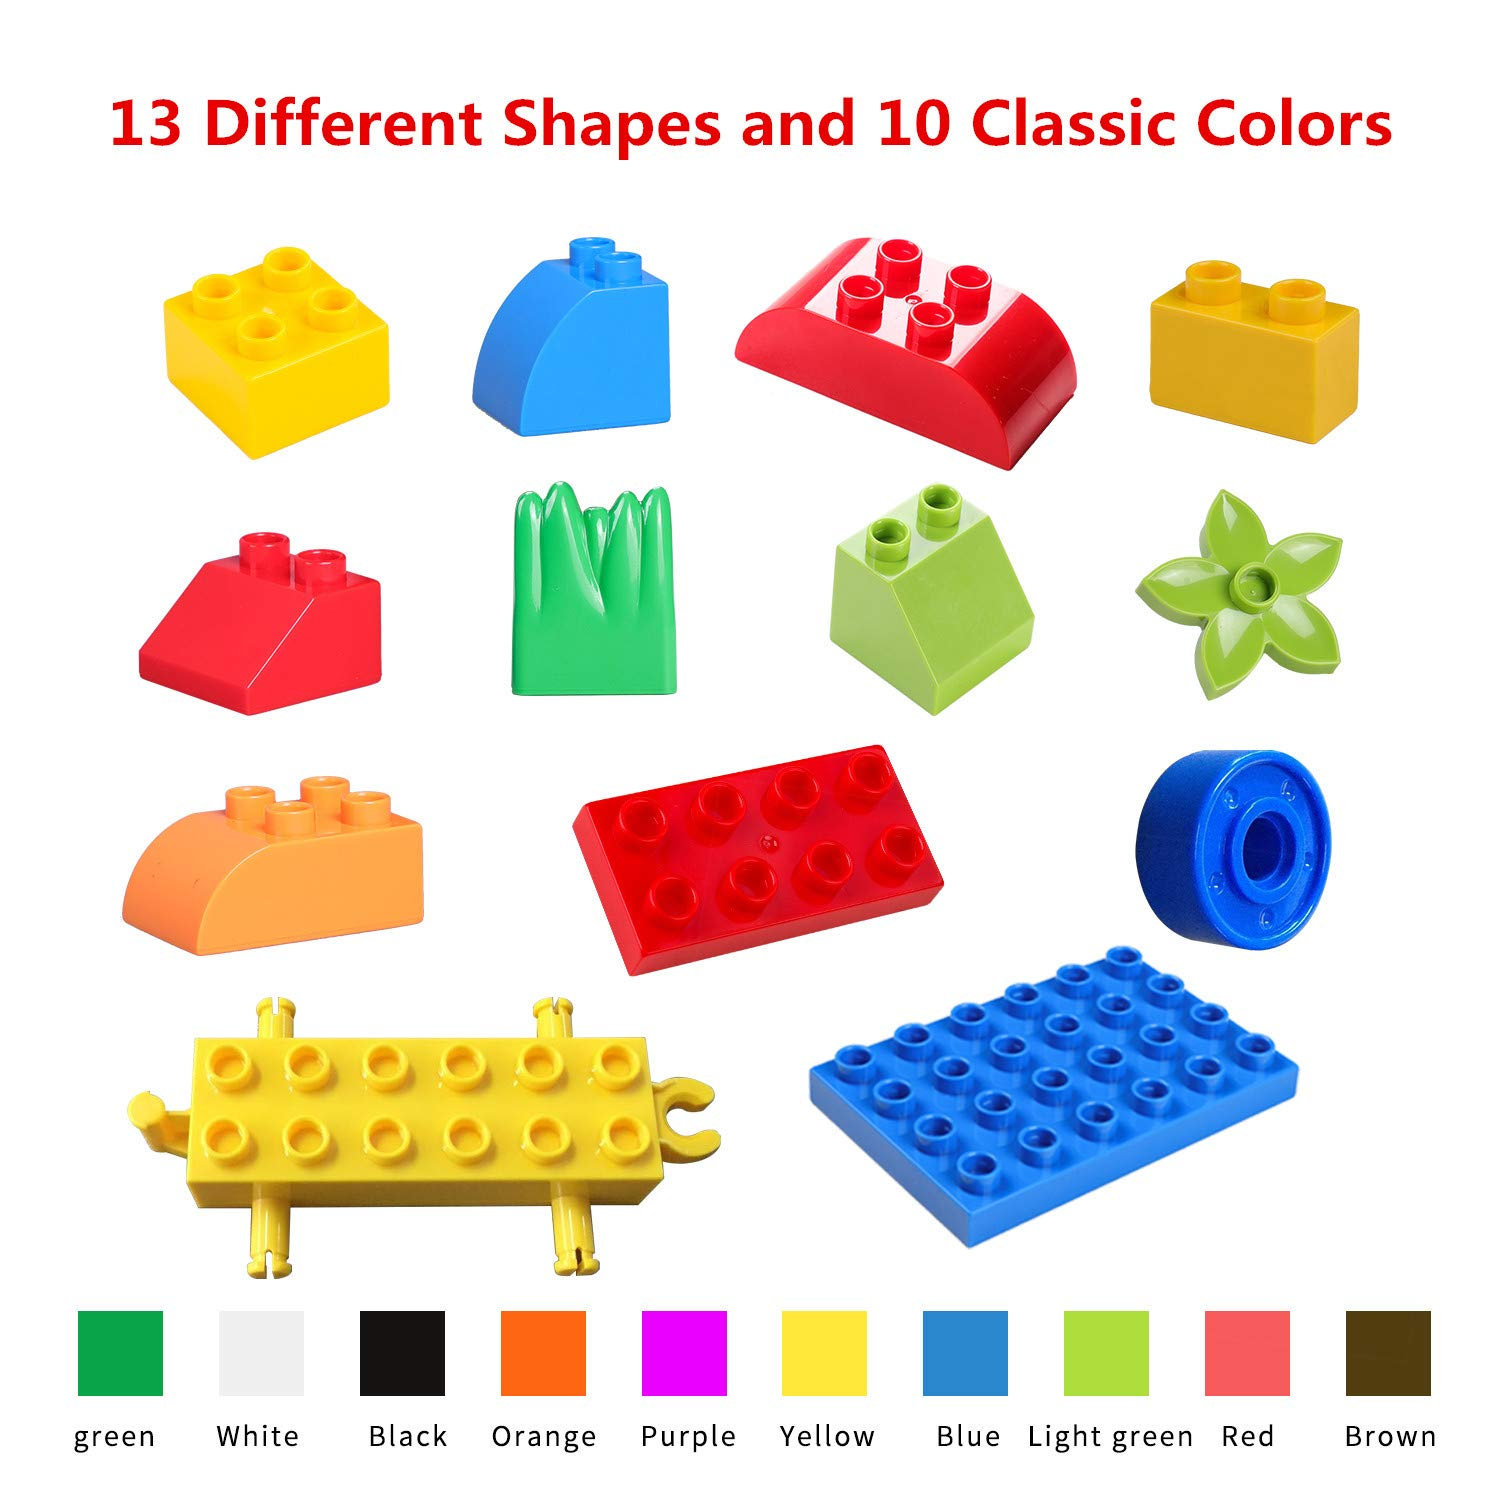 burgkidz Big Building Block Sets - 214 Pieces Toddler Educational Toy Classic Large Sizes Building Blocks Bricks - 13 Fun Shapes and Storage Bucket - Compatible with All Major Brands by burgkidz (Image #3)